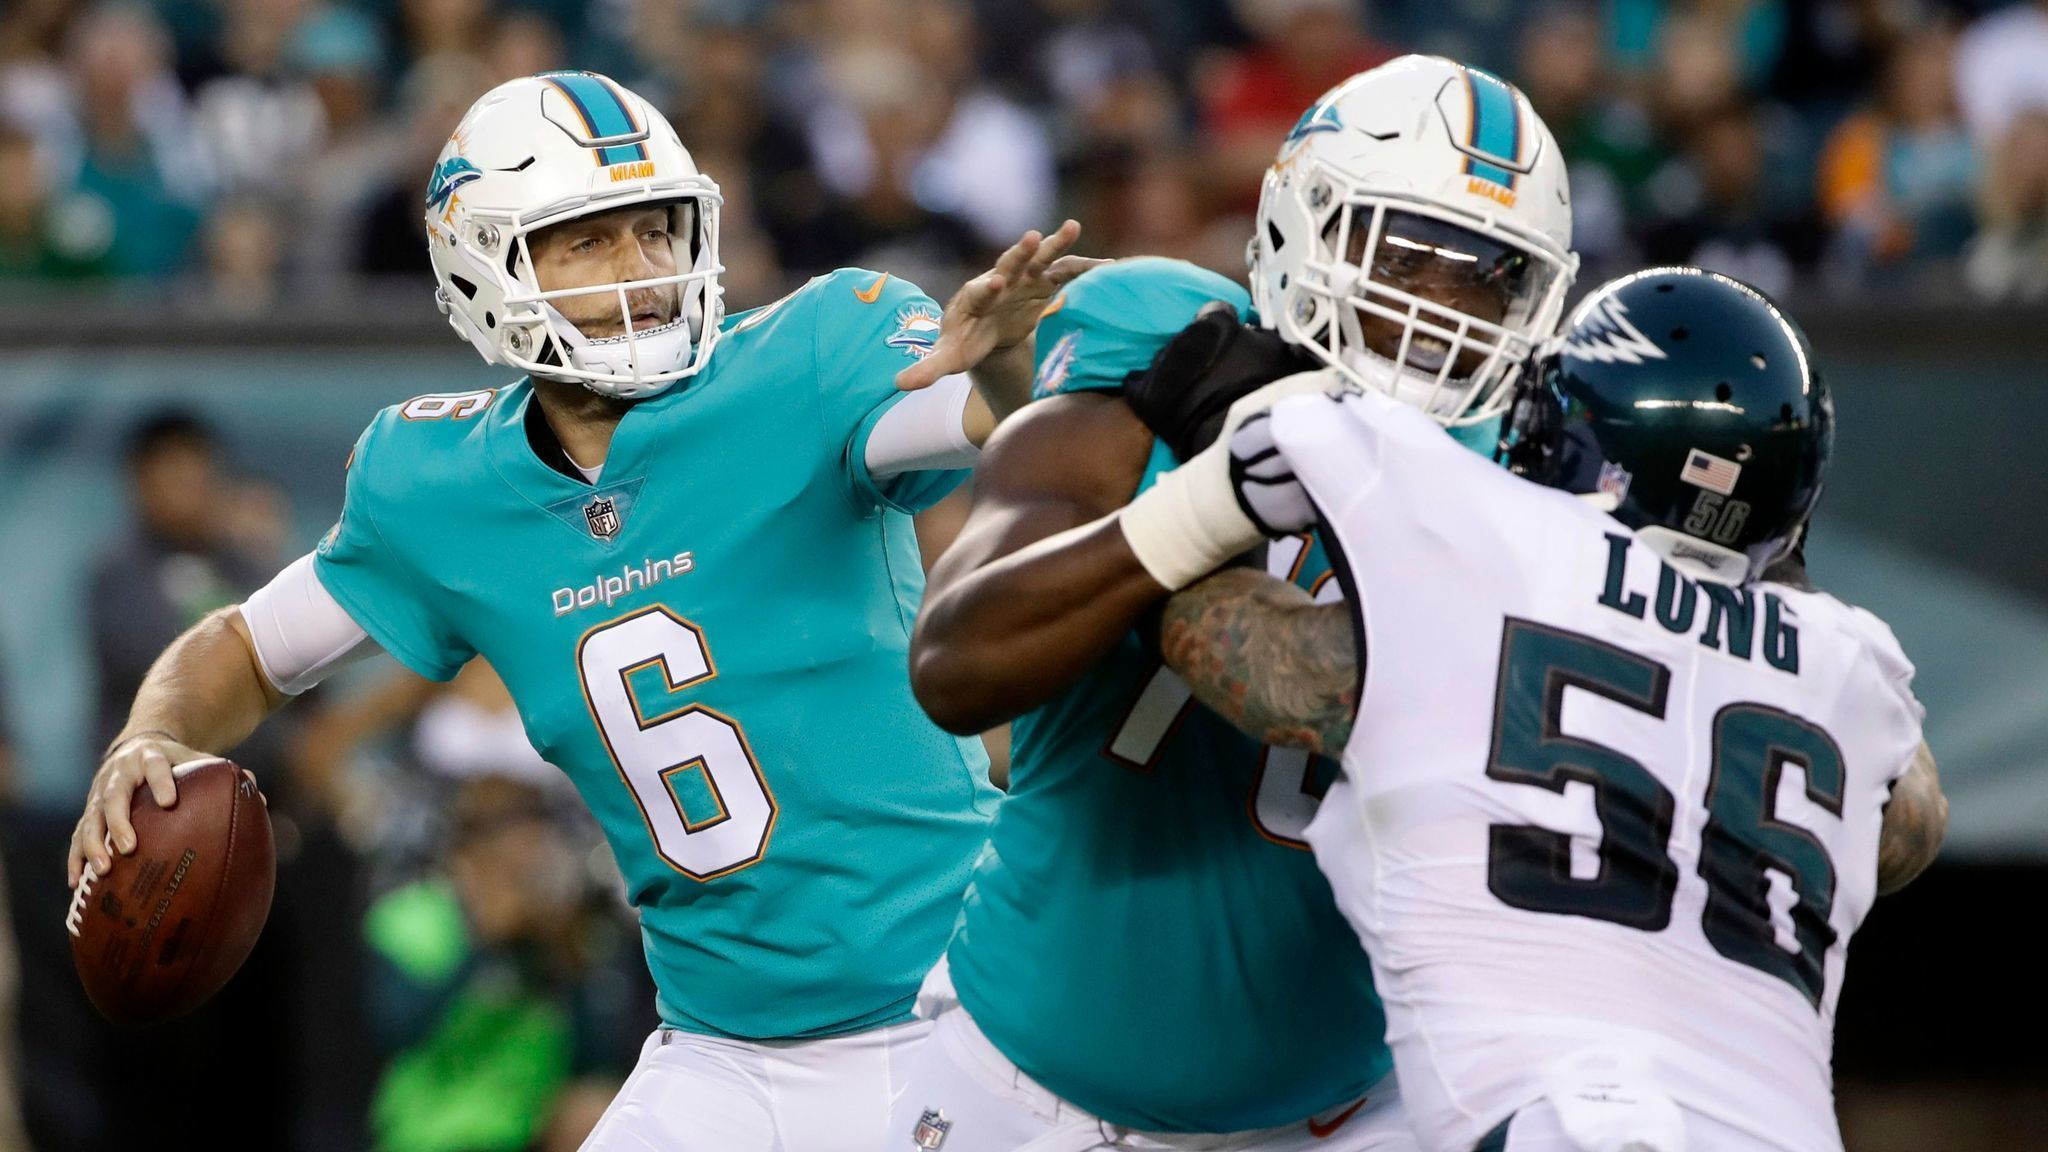 Jay Cutler Impresses But Dolphins Sloppy With The Ball Against Eagles